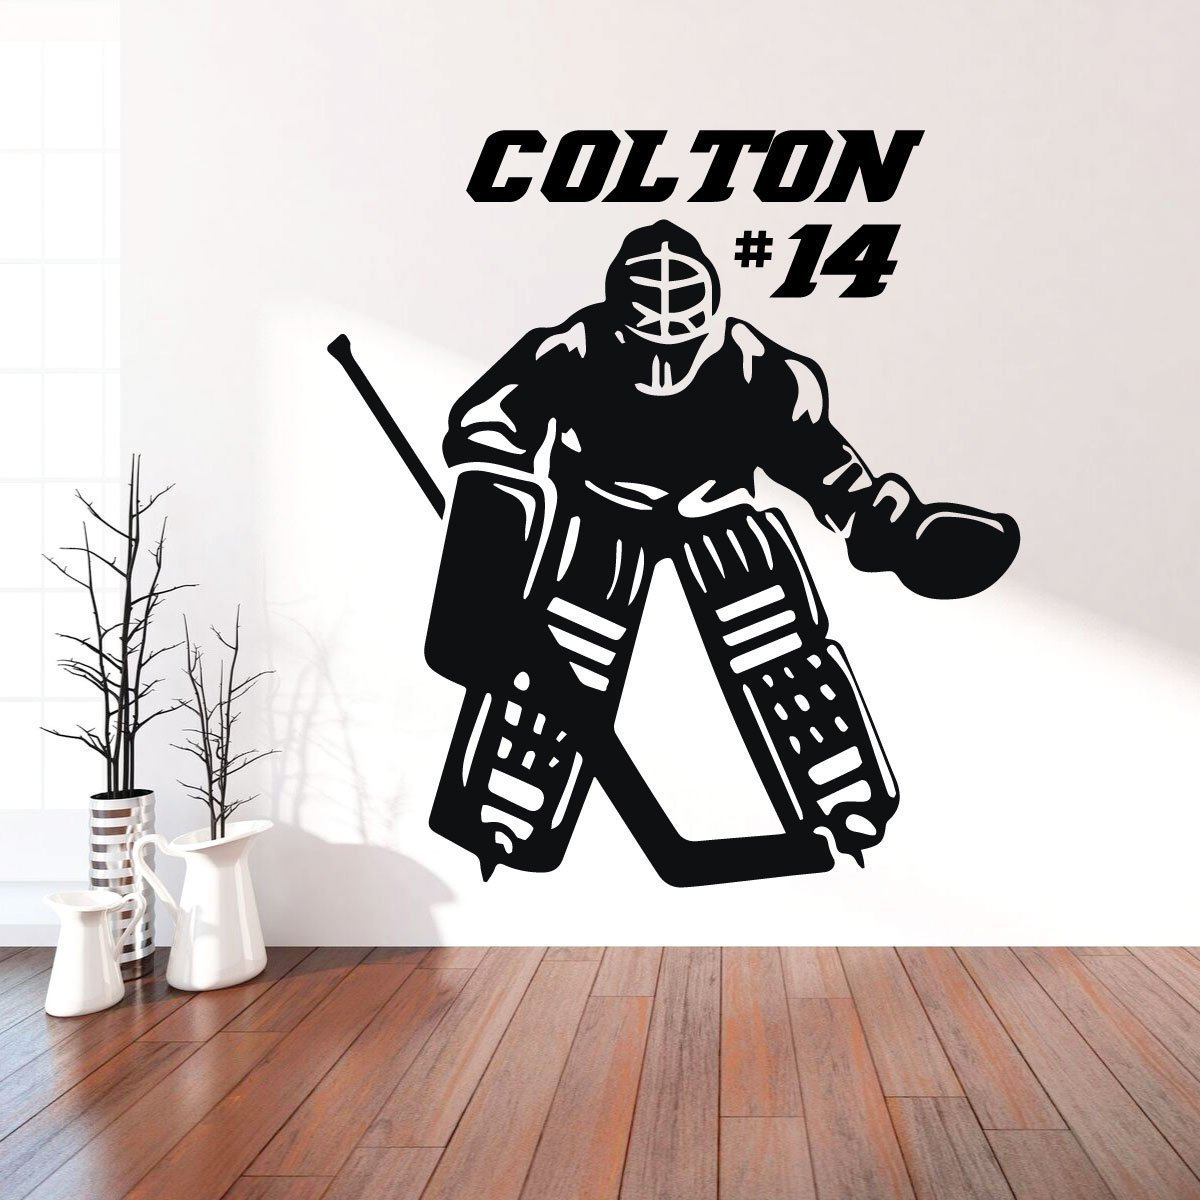 Hockey Goalie Wall Decal - Personalized Vinyl Decor For Teen, Boy's Bedroom or Playroom - Sports Decorations